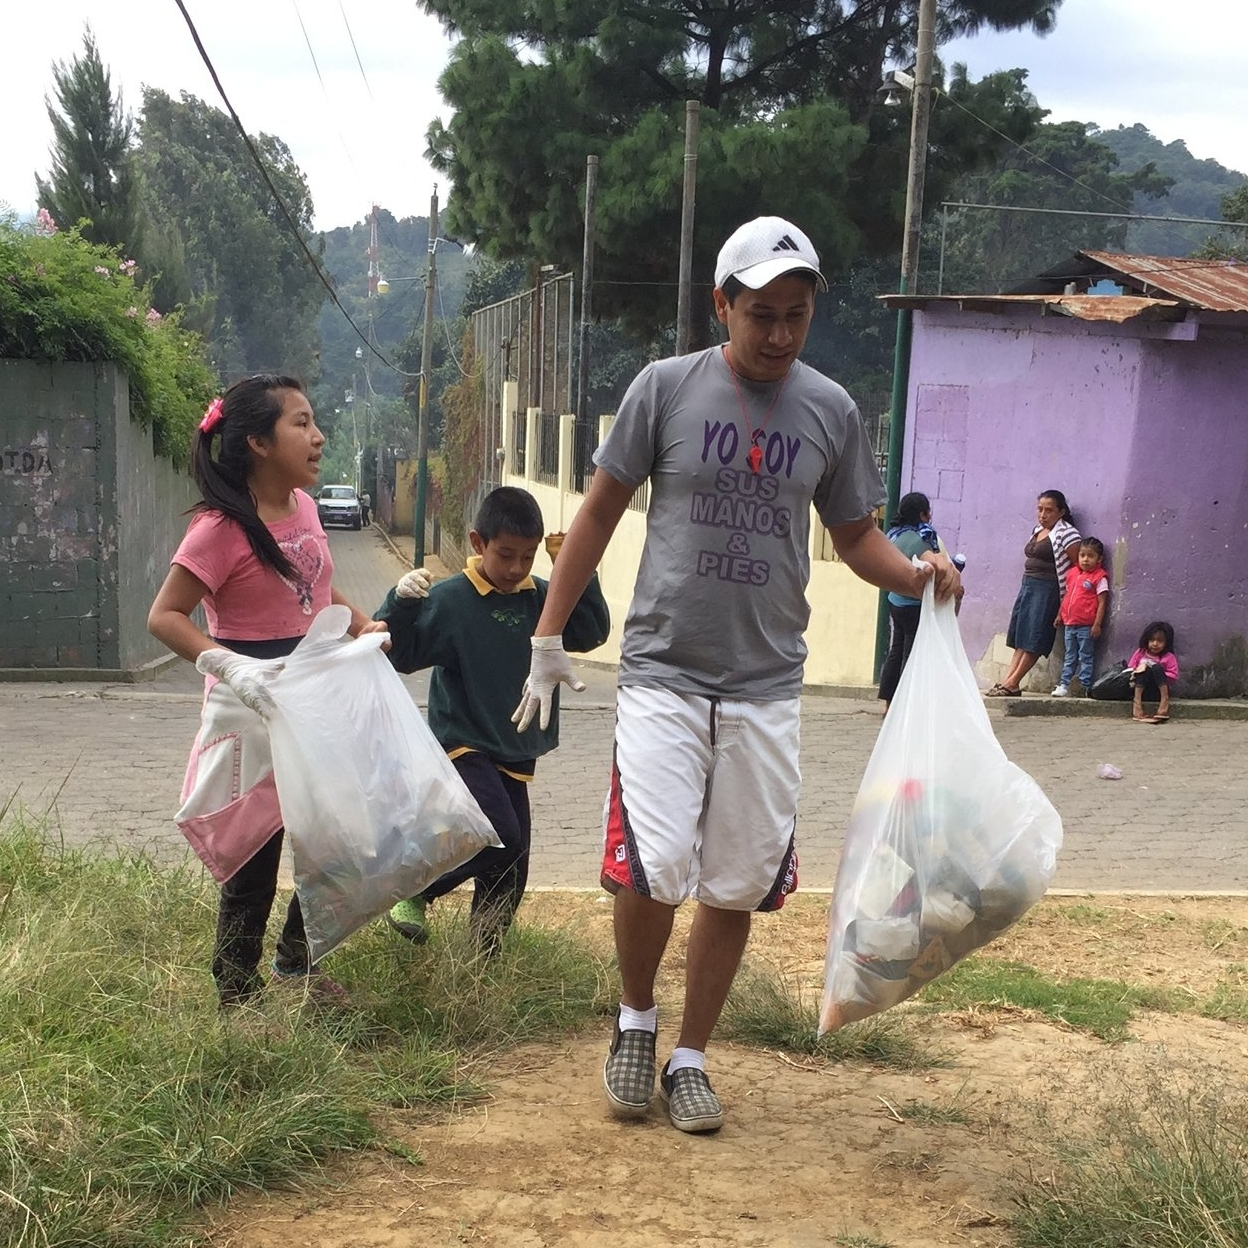 I am the Future - We have a monthly development program to help teach the children of the community to work and help their own community by cleaning the streets and help the families in need